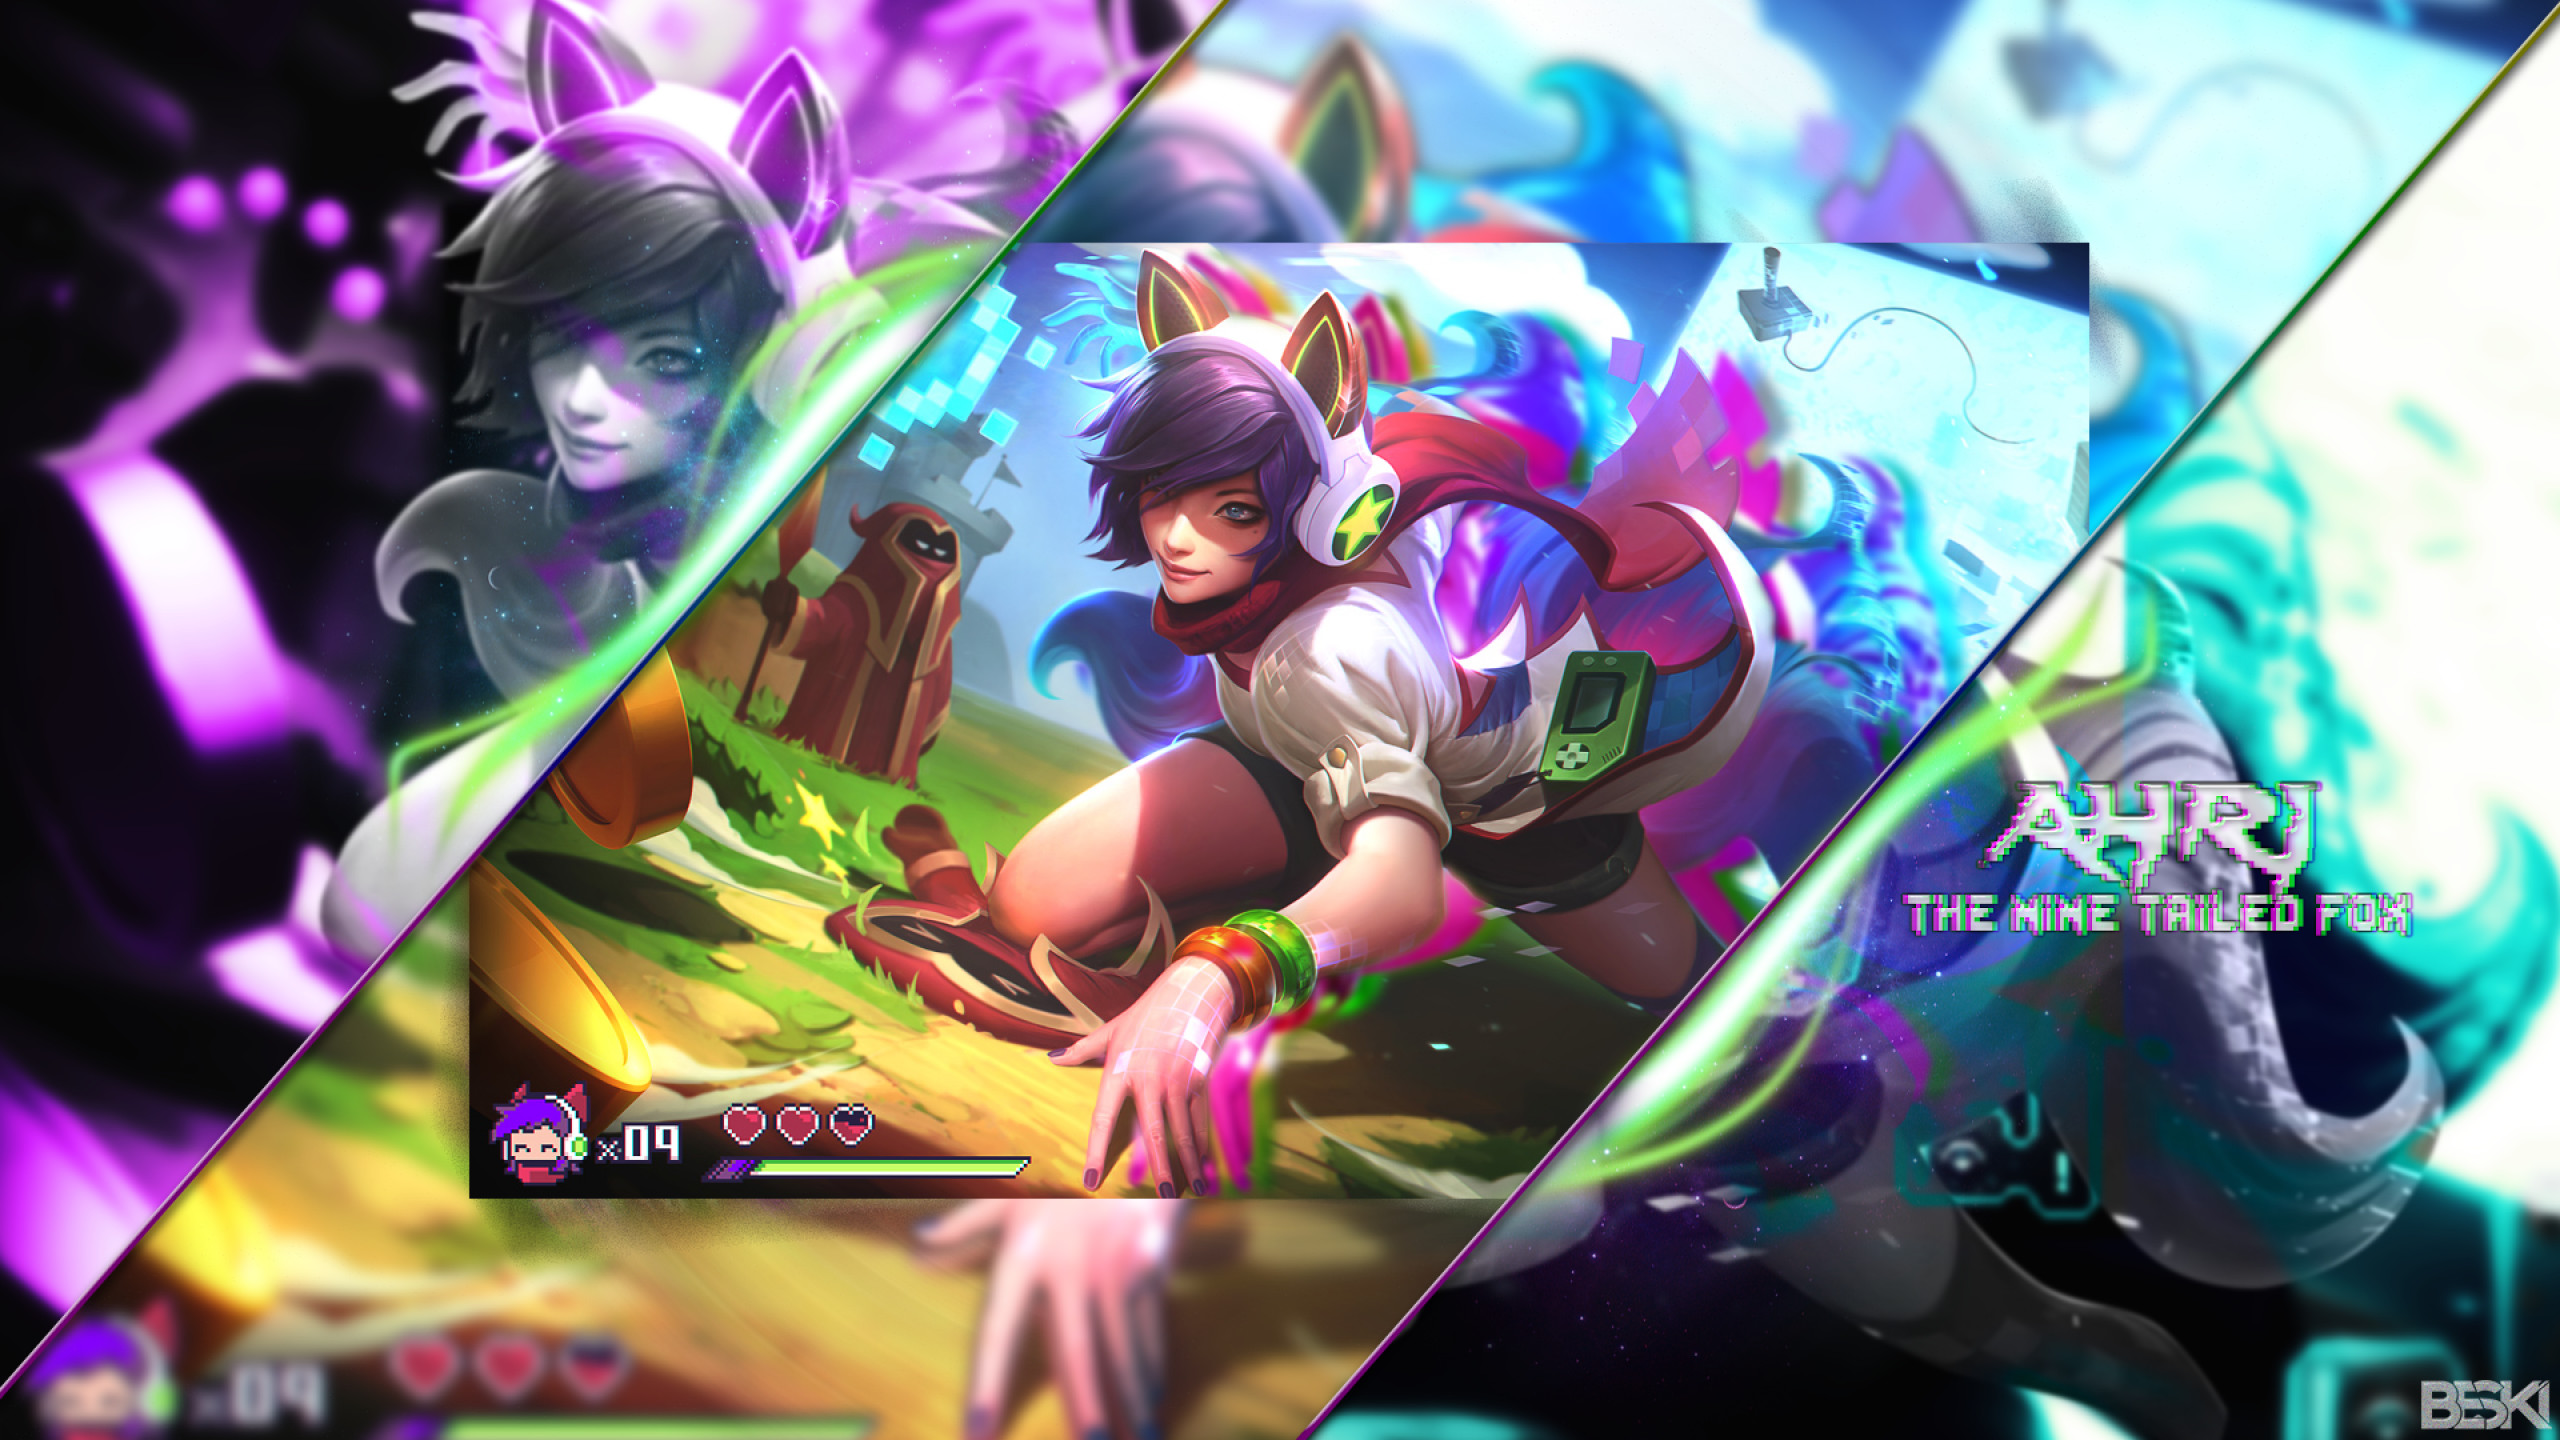 2560x1440 League Of Legends, Ahri, Nine Tailed Fox